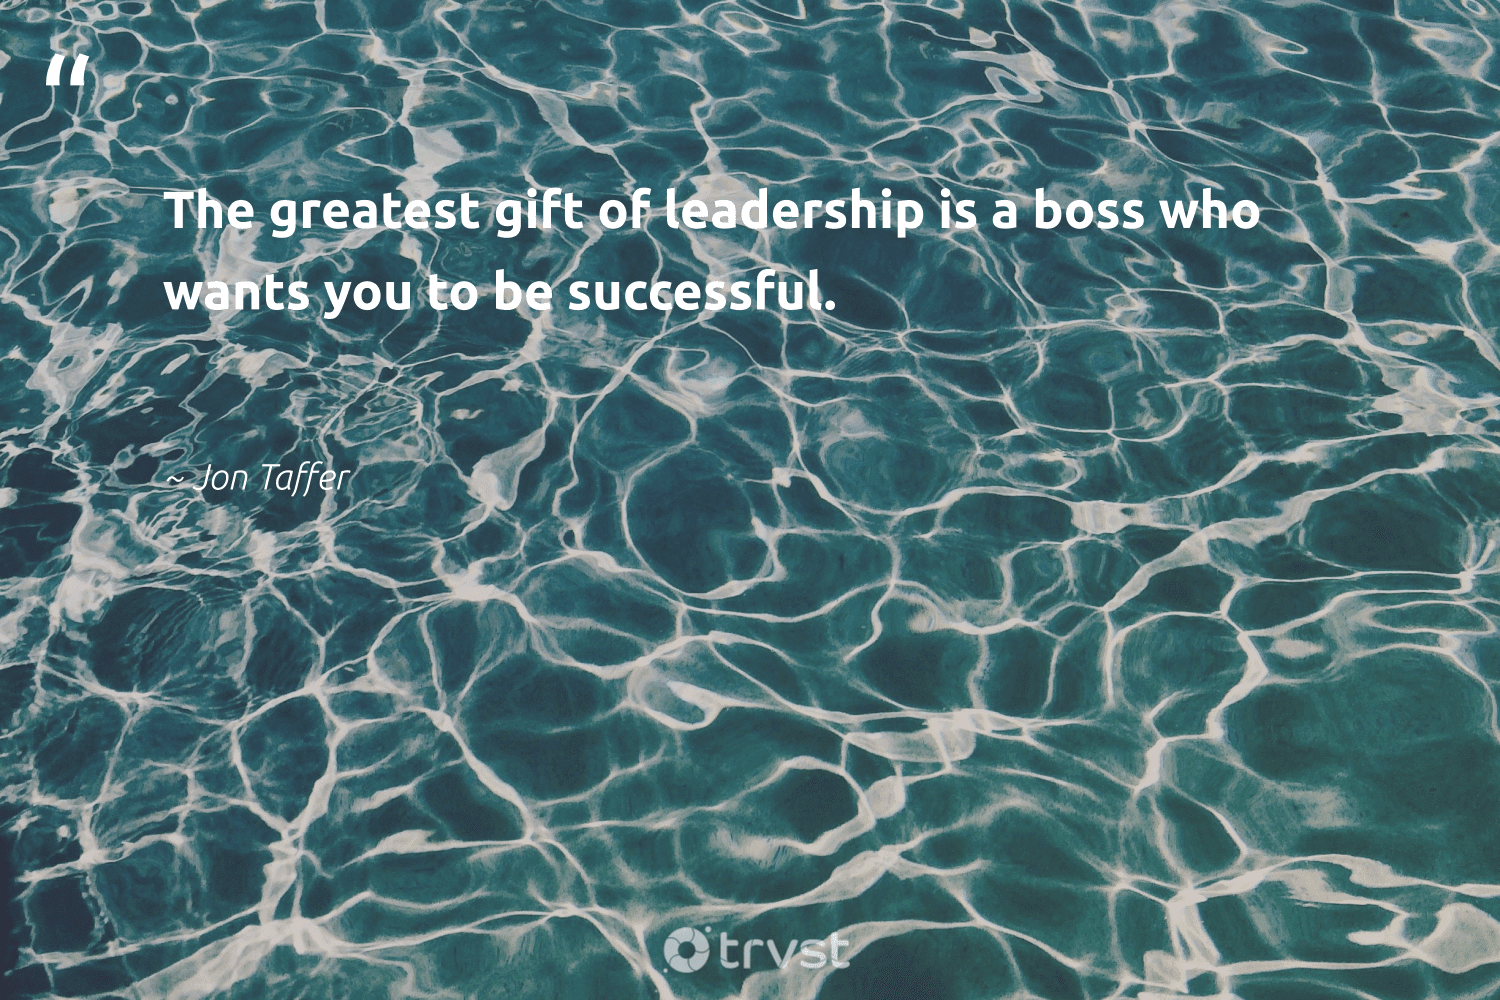 """""""The greatest gift of leadership is a boss who wants you to be successful.""""  - Jon Taffer #trvst #quotes #leadership #leadershipskills #nevergiveup #softskills #bethechange #leadershipdevelopment #futureofwork #begreat #thinkgreen #leadershipqualities"""